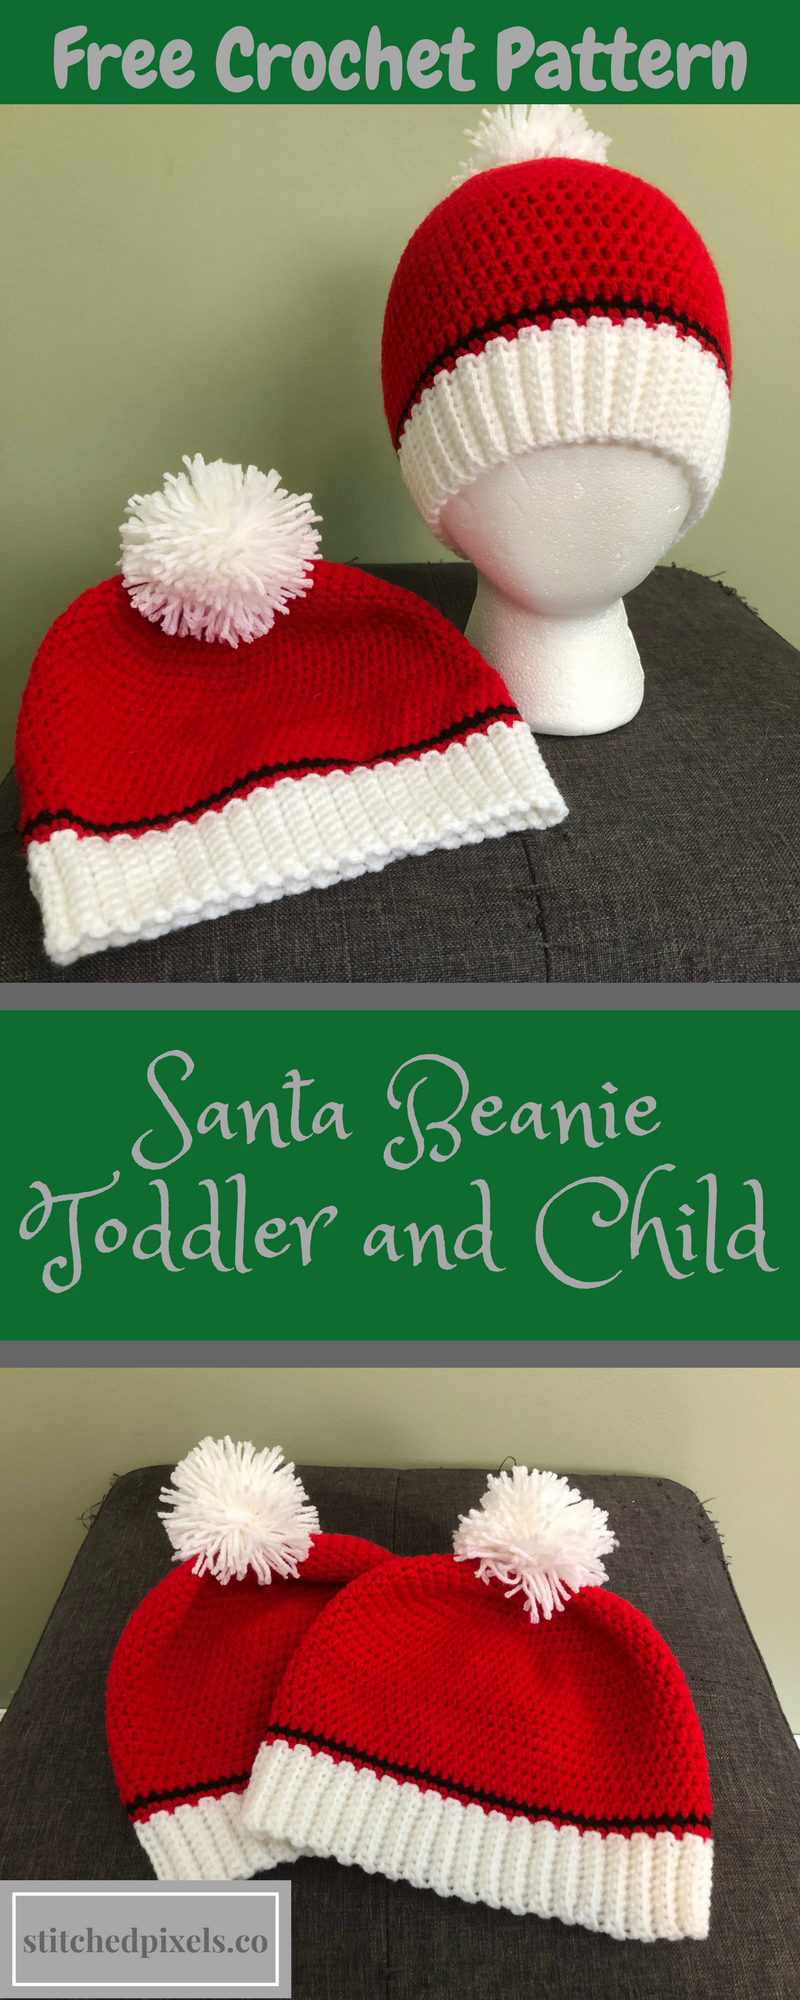 Stay festive this holiday season with this free crochet pattern ...